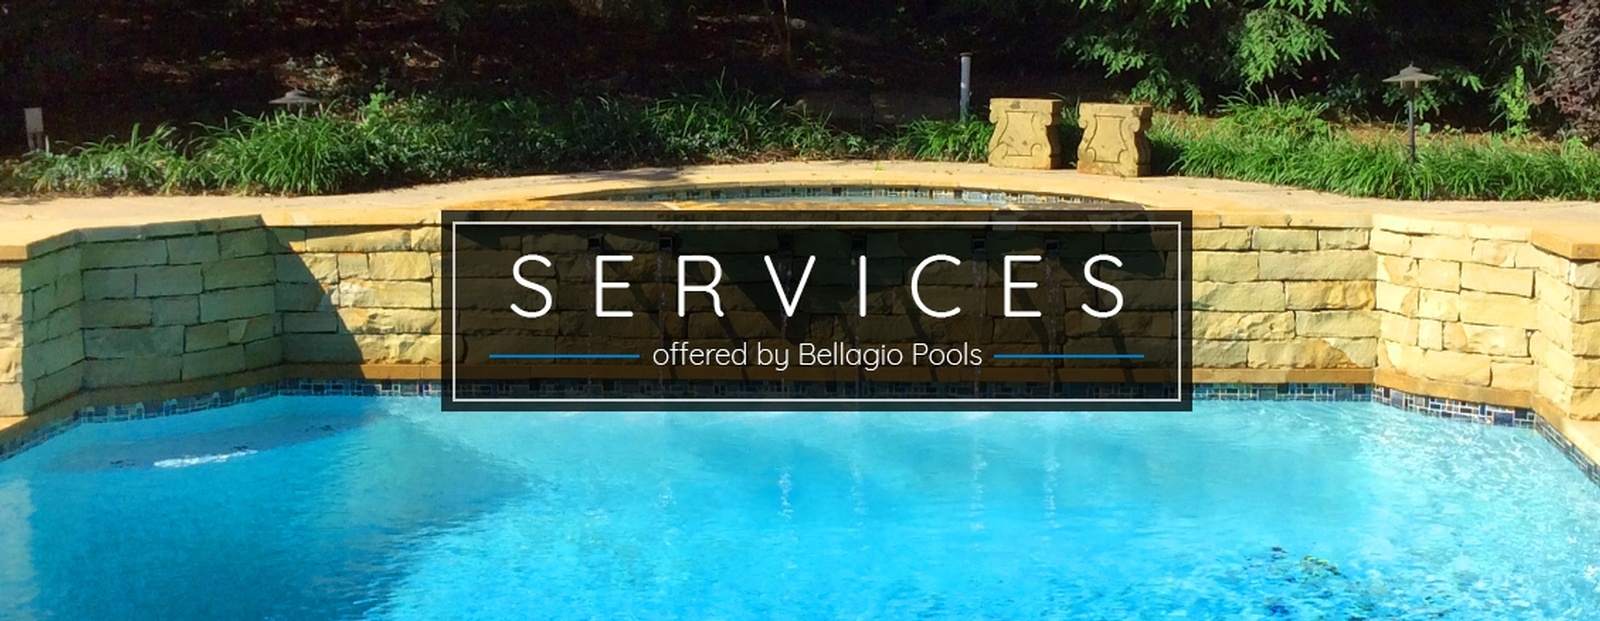 Pool Construction Services in Alpharetta